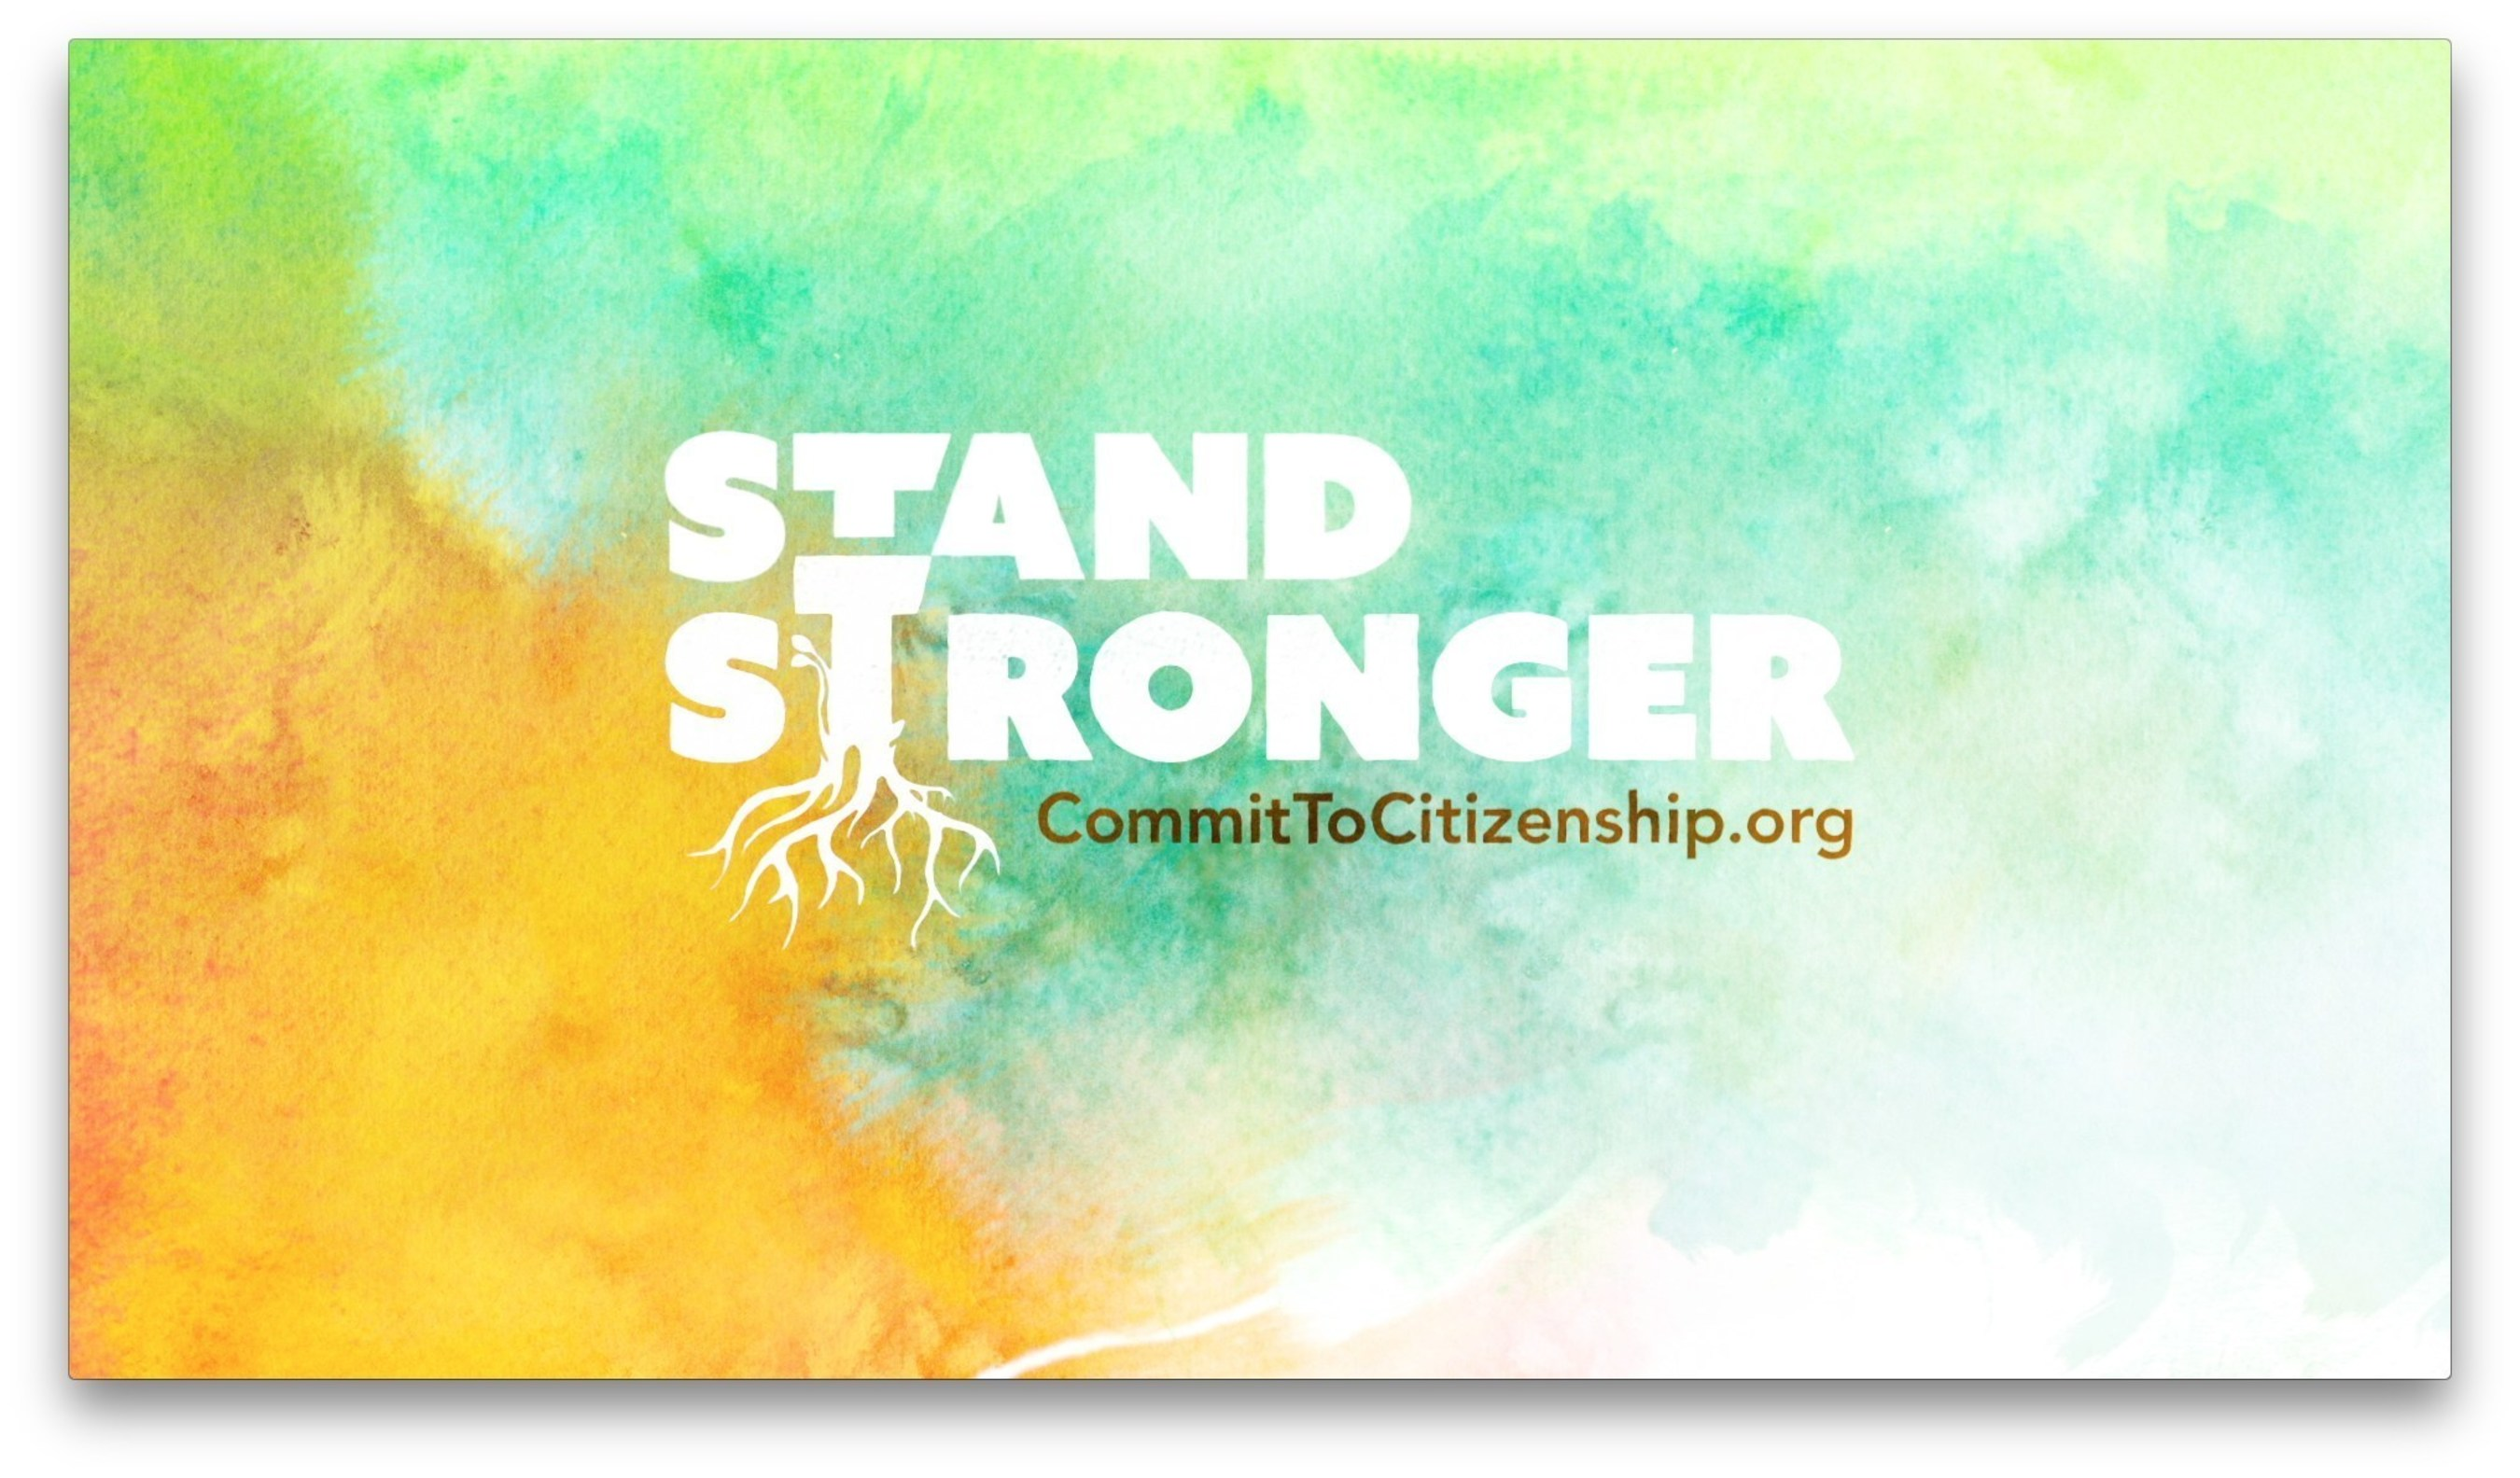 Republica Unveils 'Stand Stronger' Campaign For Coalition Initiative Promoting U.S. Citizenship